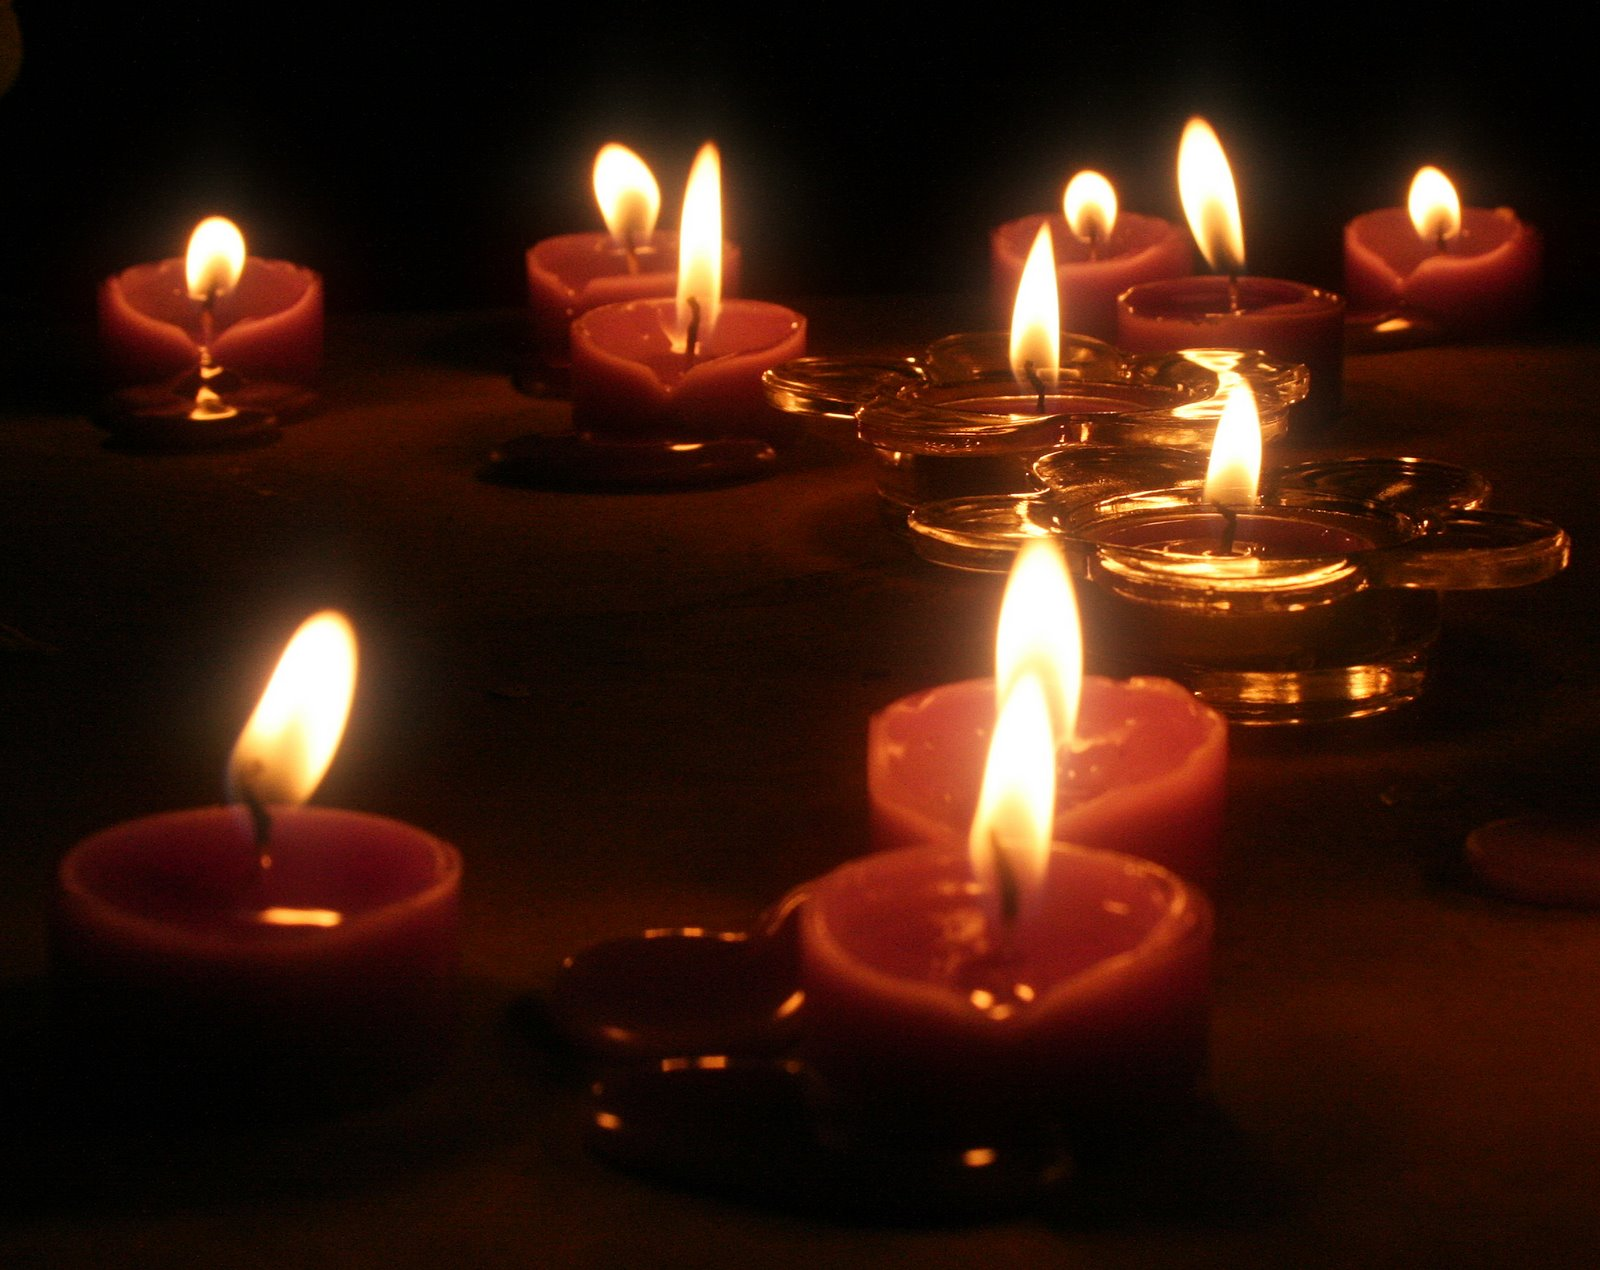 Animated Diwali Diya Wallpapers Festivals Pictures Images For Diwali Lamp Download